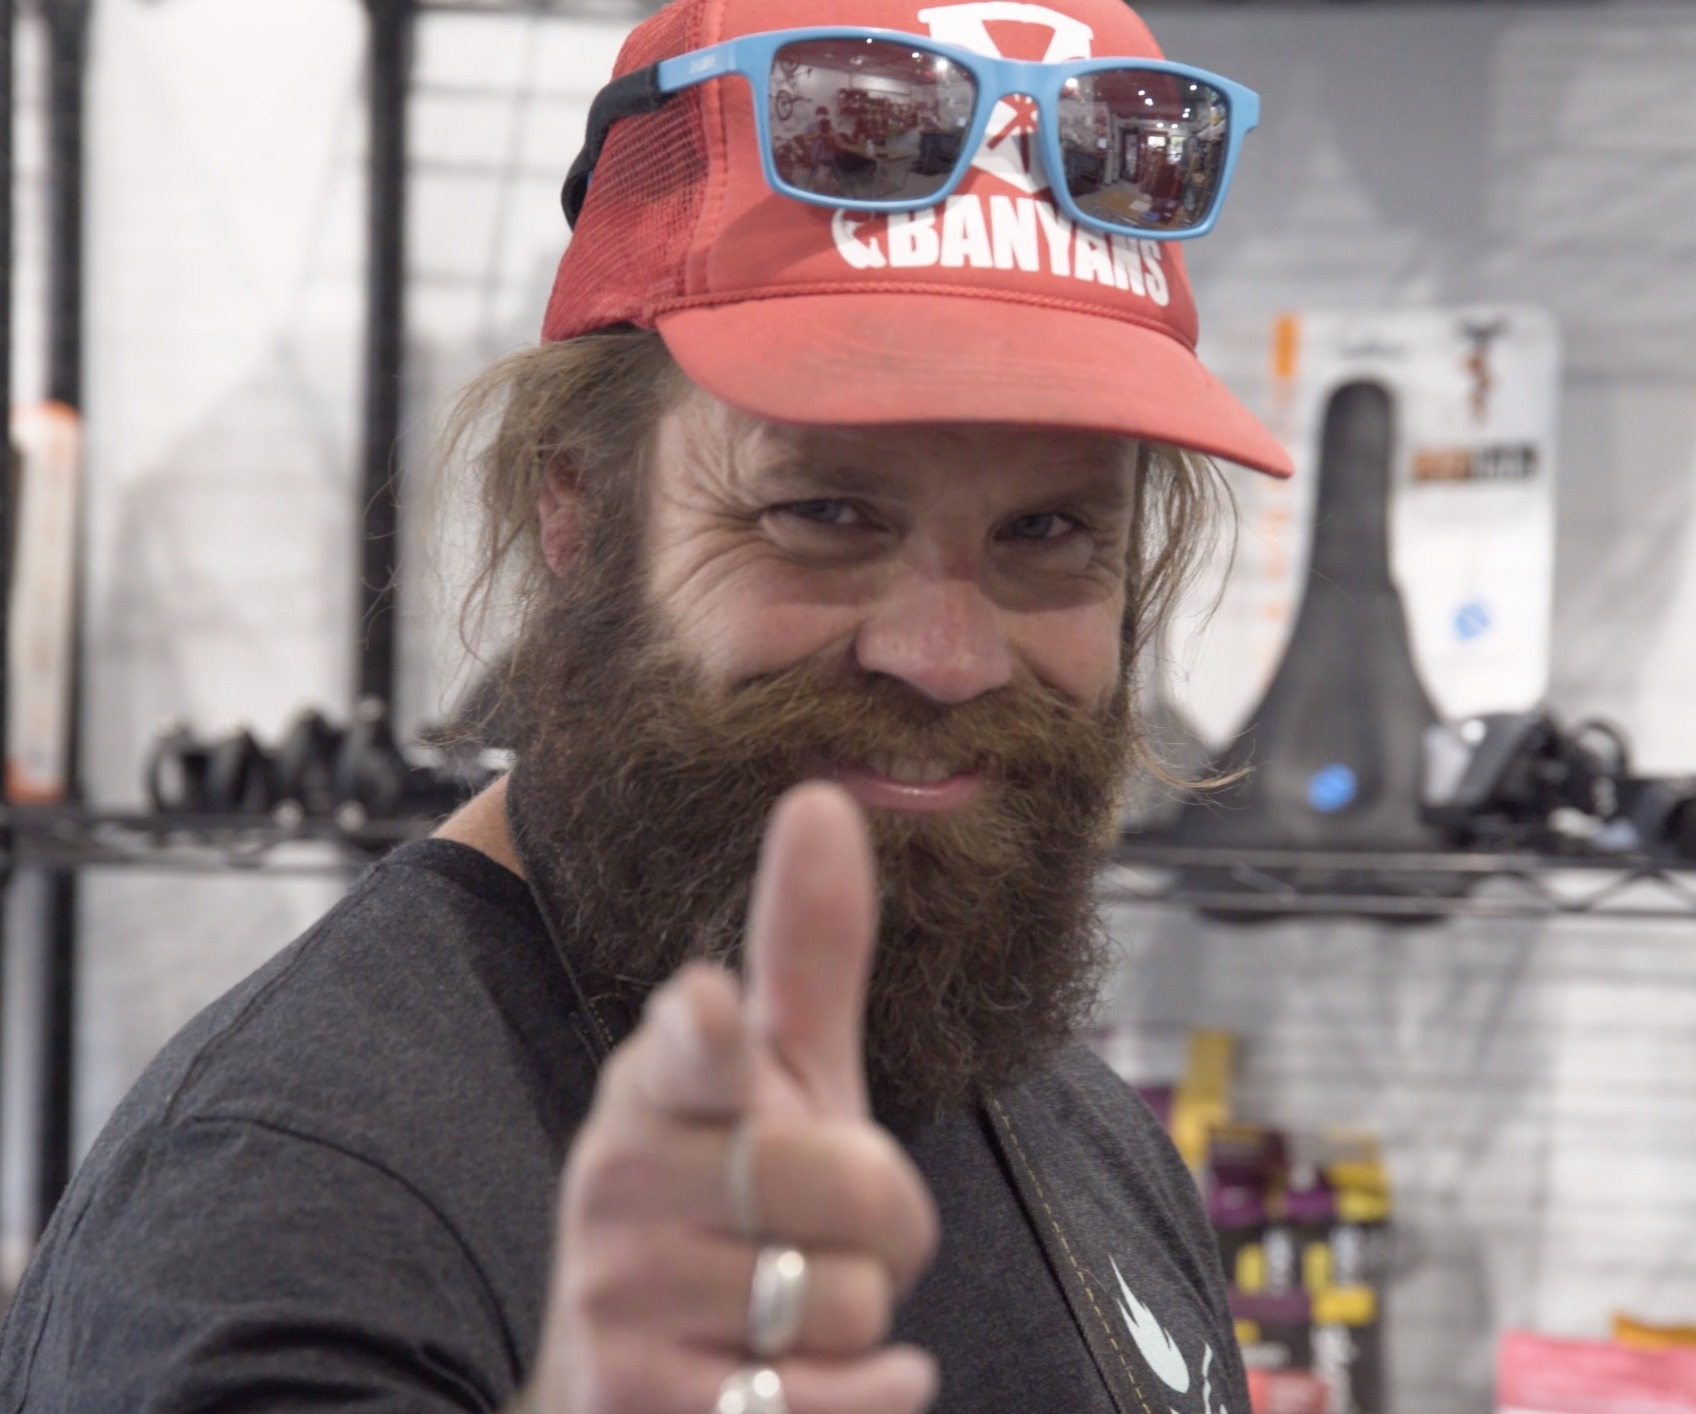 Smiling shop employee with a beard, hat and sunglasses.